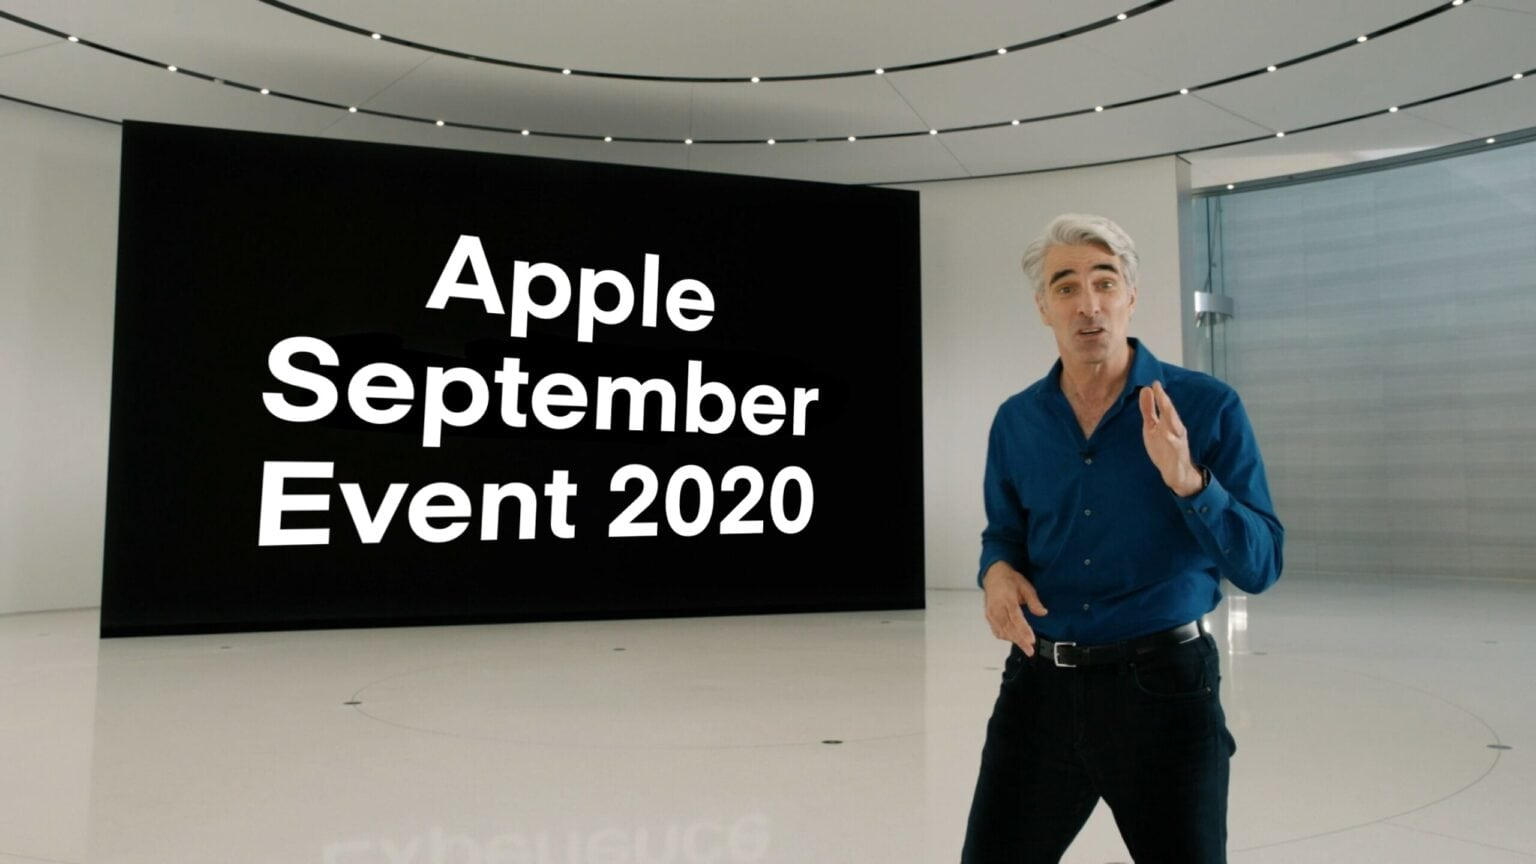 The Apple September Event 2020 will surely take advantage of its virtual nature.